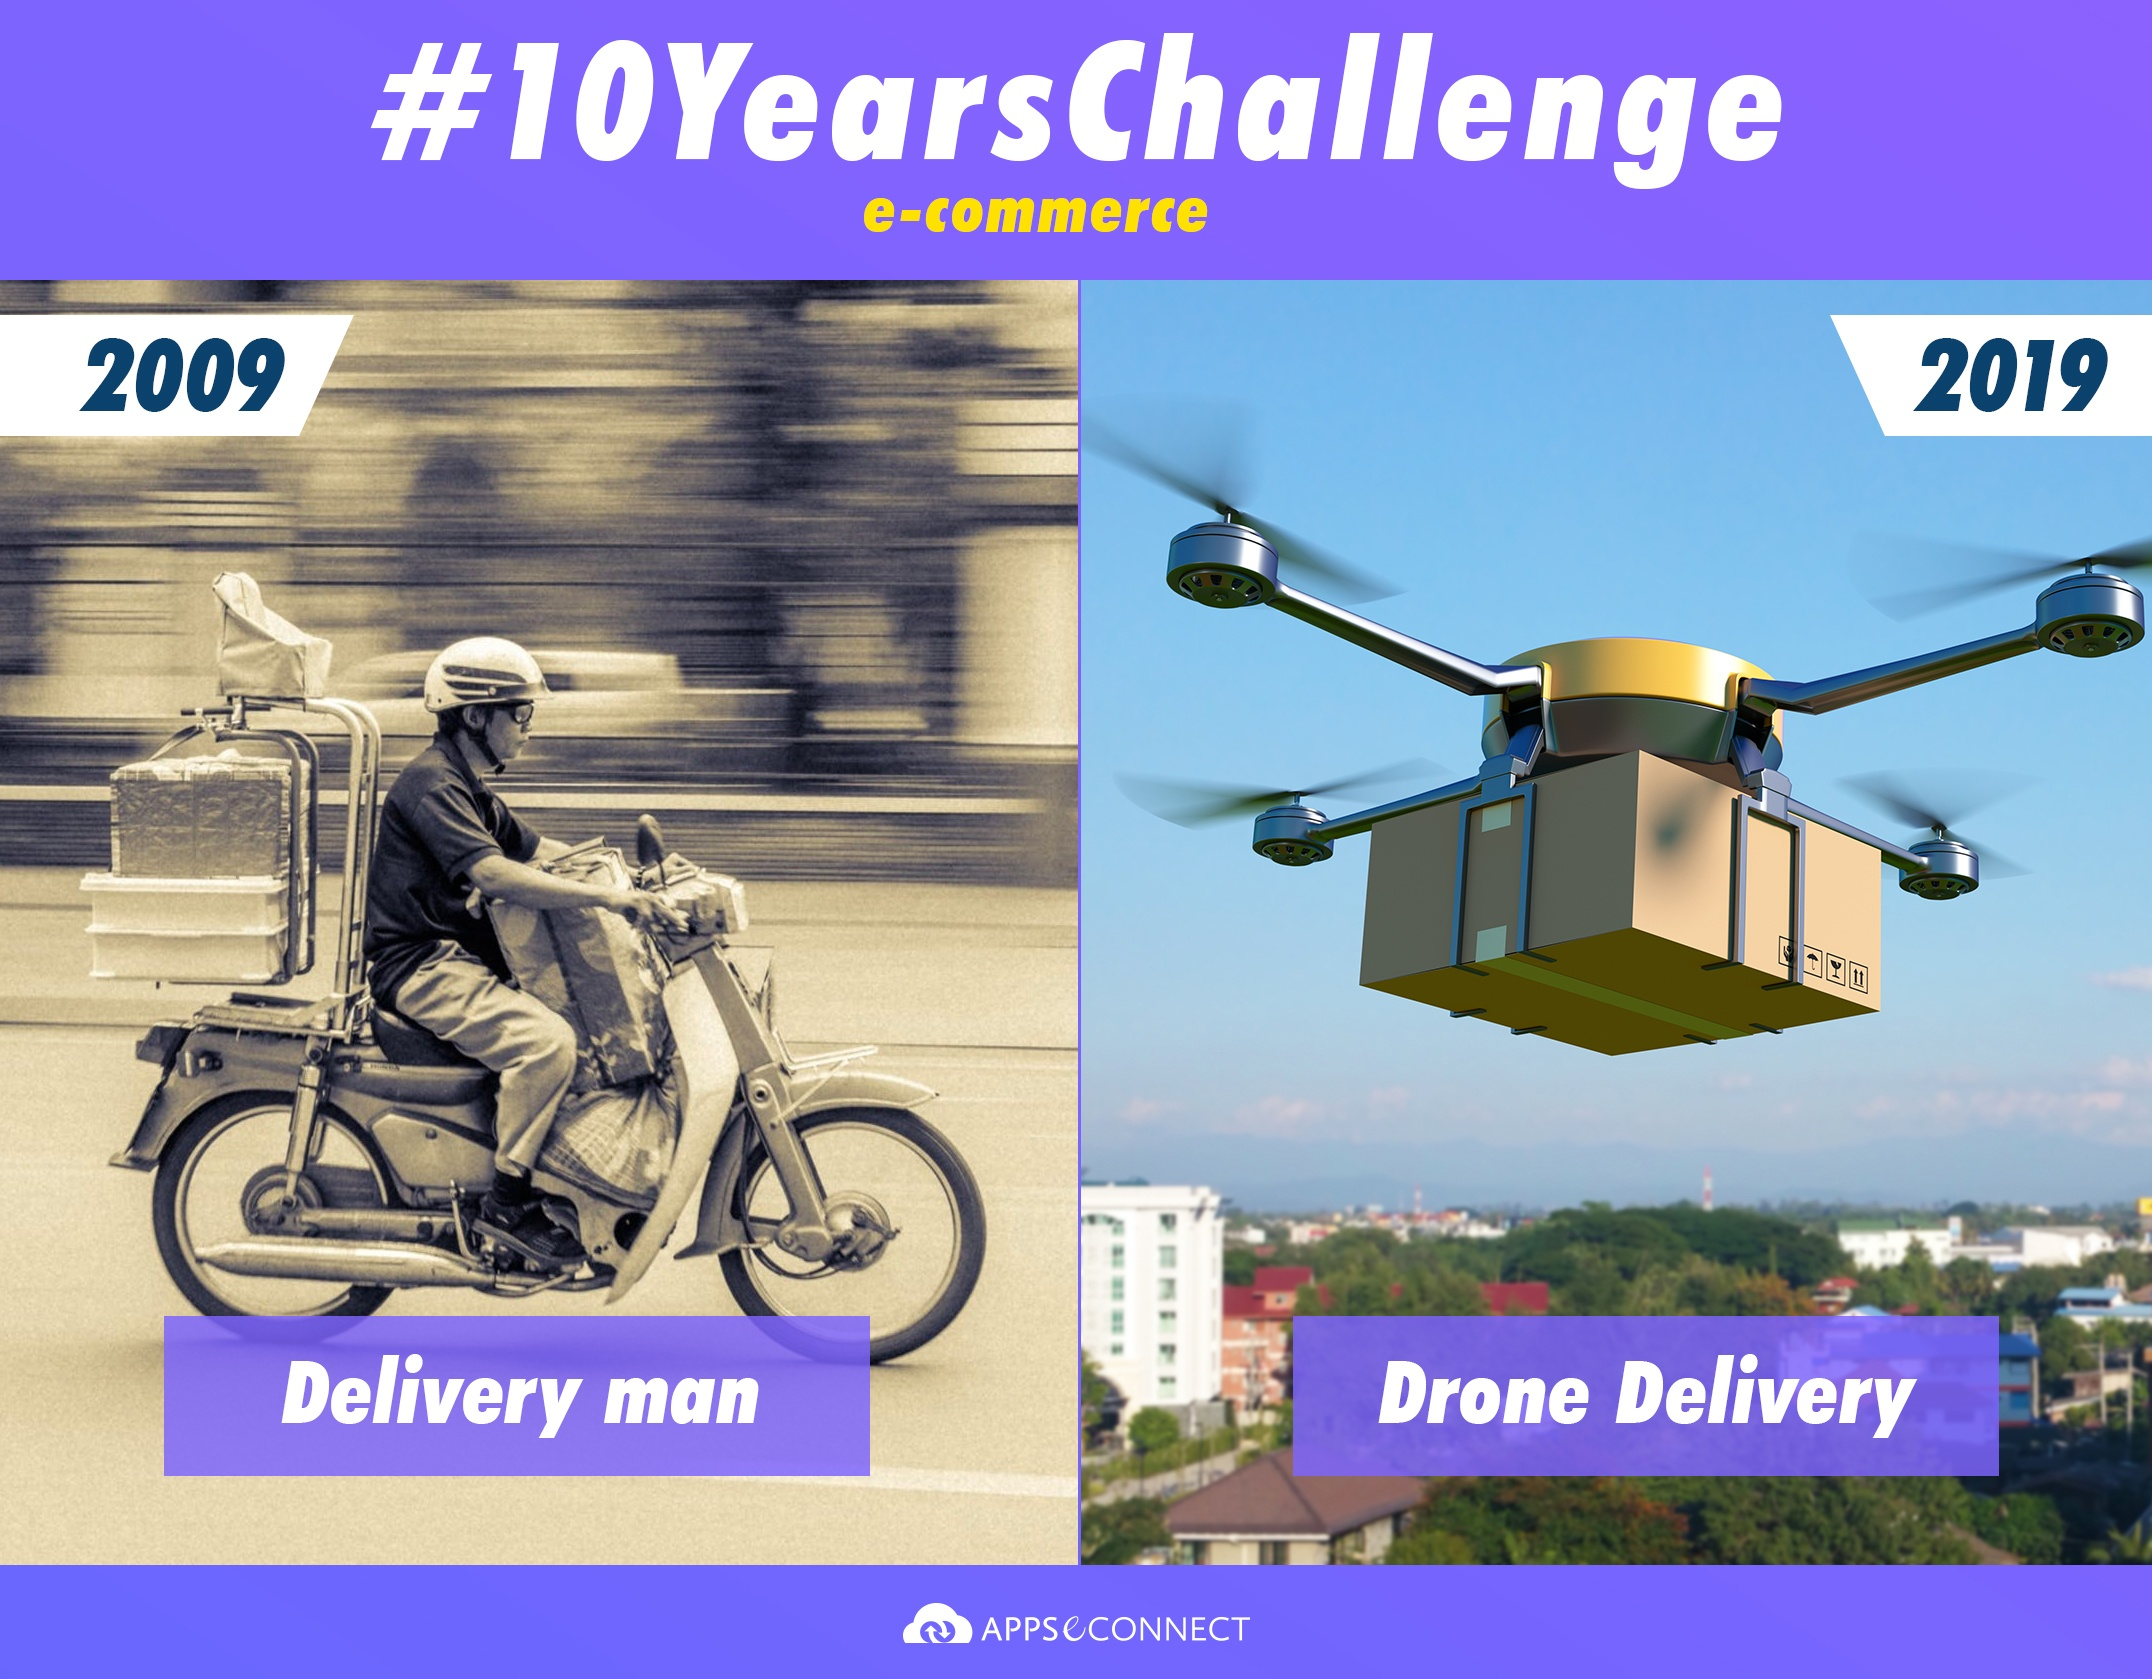 Drone-being-used-for-delivery-Ecommerce-10-Years-Challenge